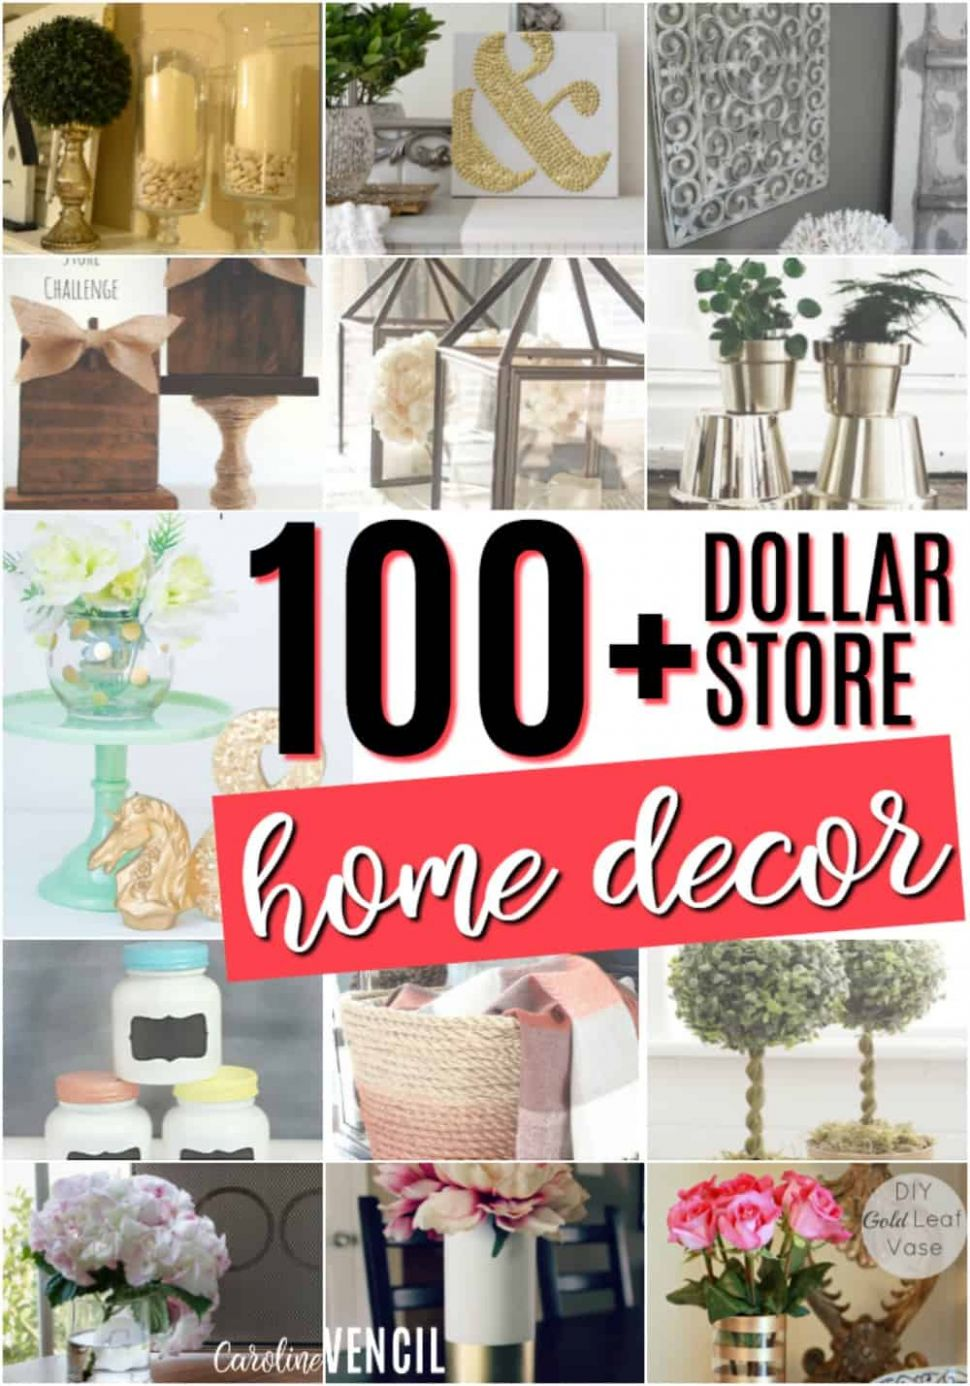 Dollar Store Home Decor Ideas - diy home decor dollar store